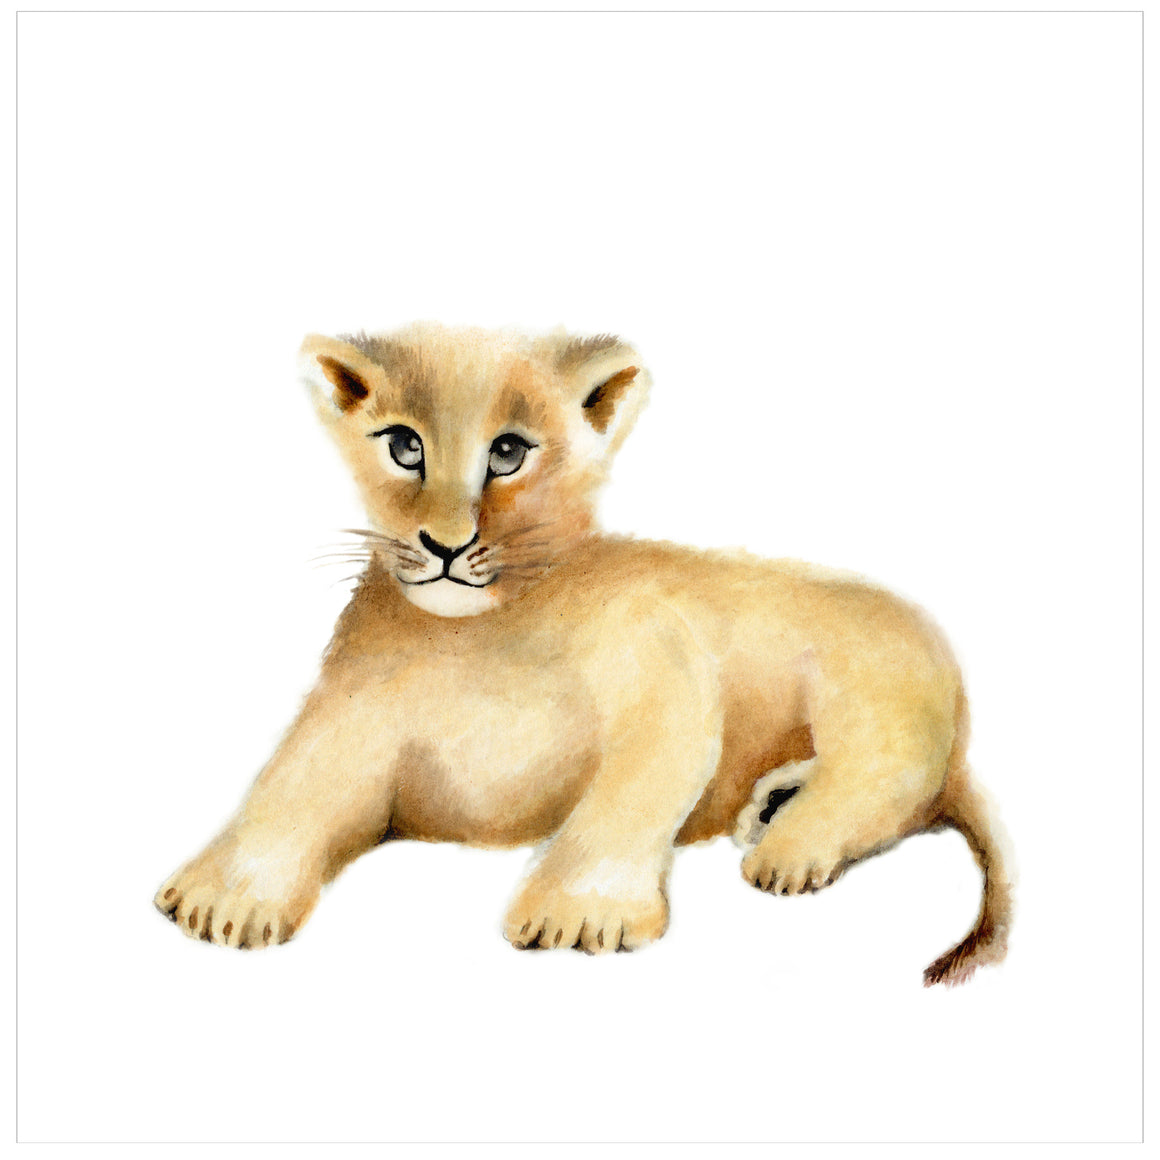 Lion Cub Nursery Art Print - Studio Q - Art by Nicky Quartermaine Scott